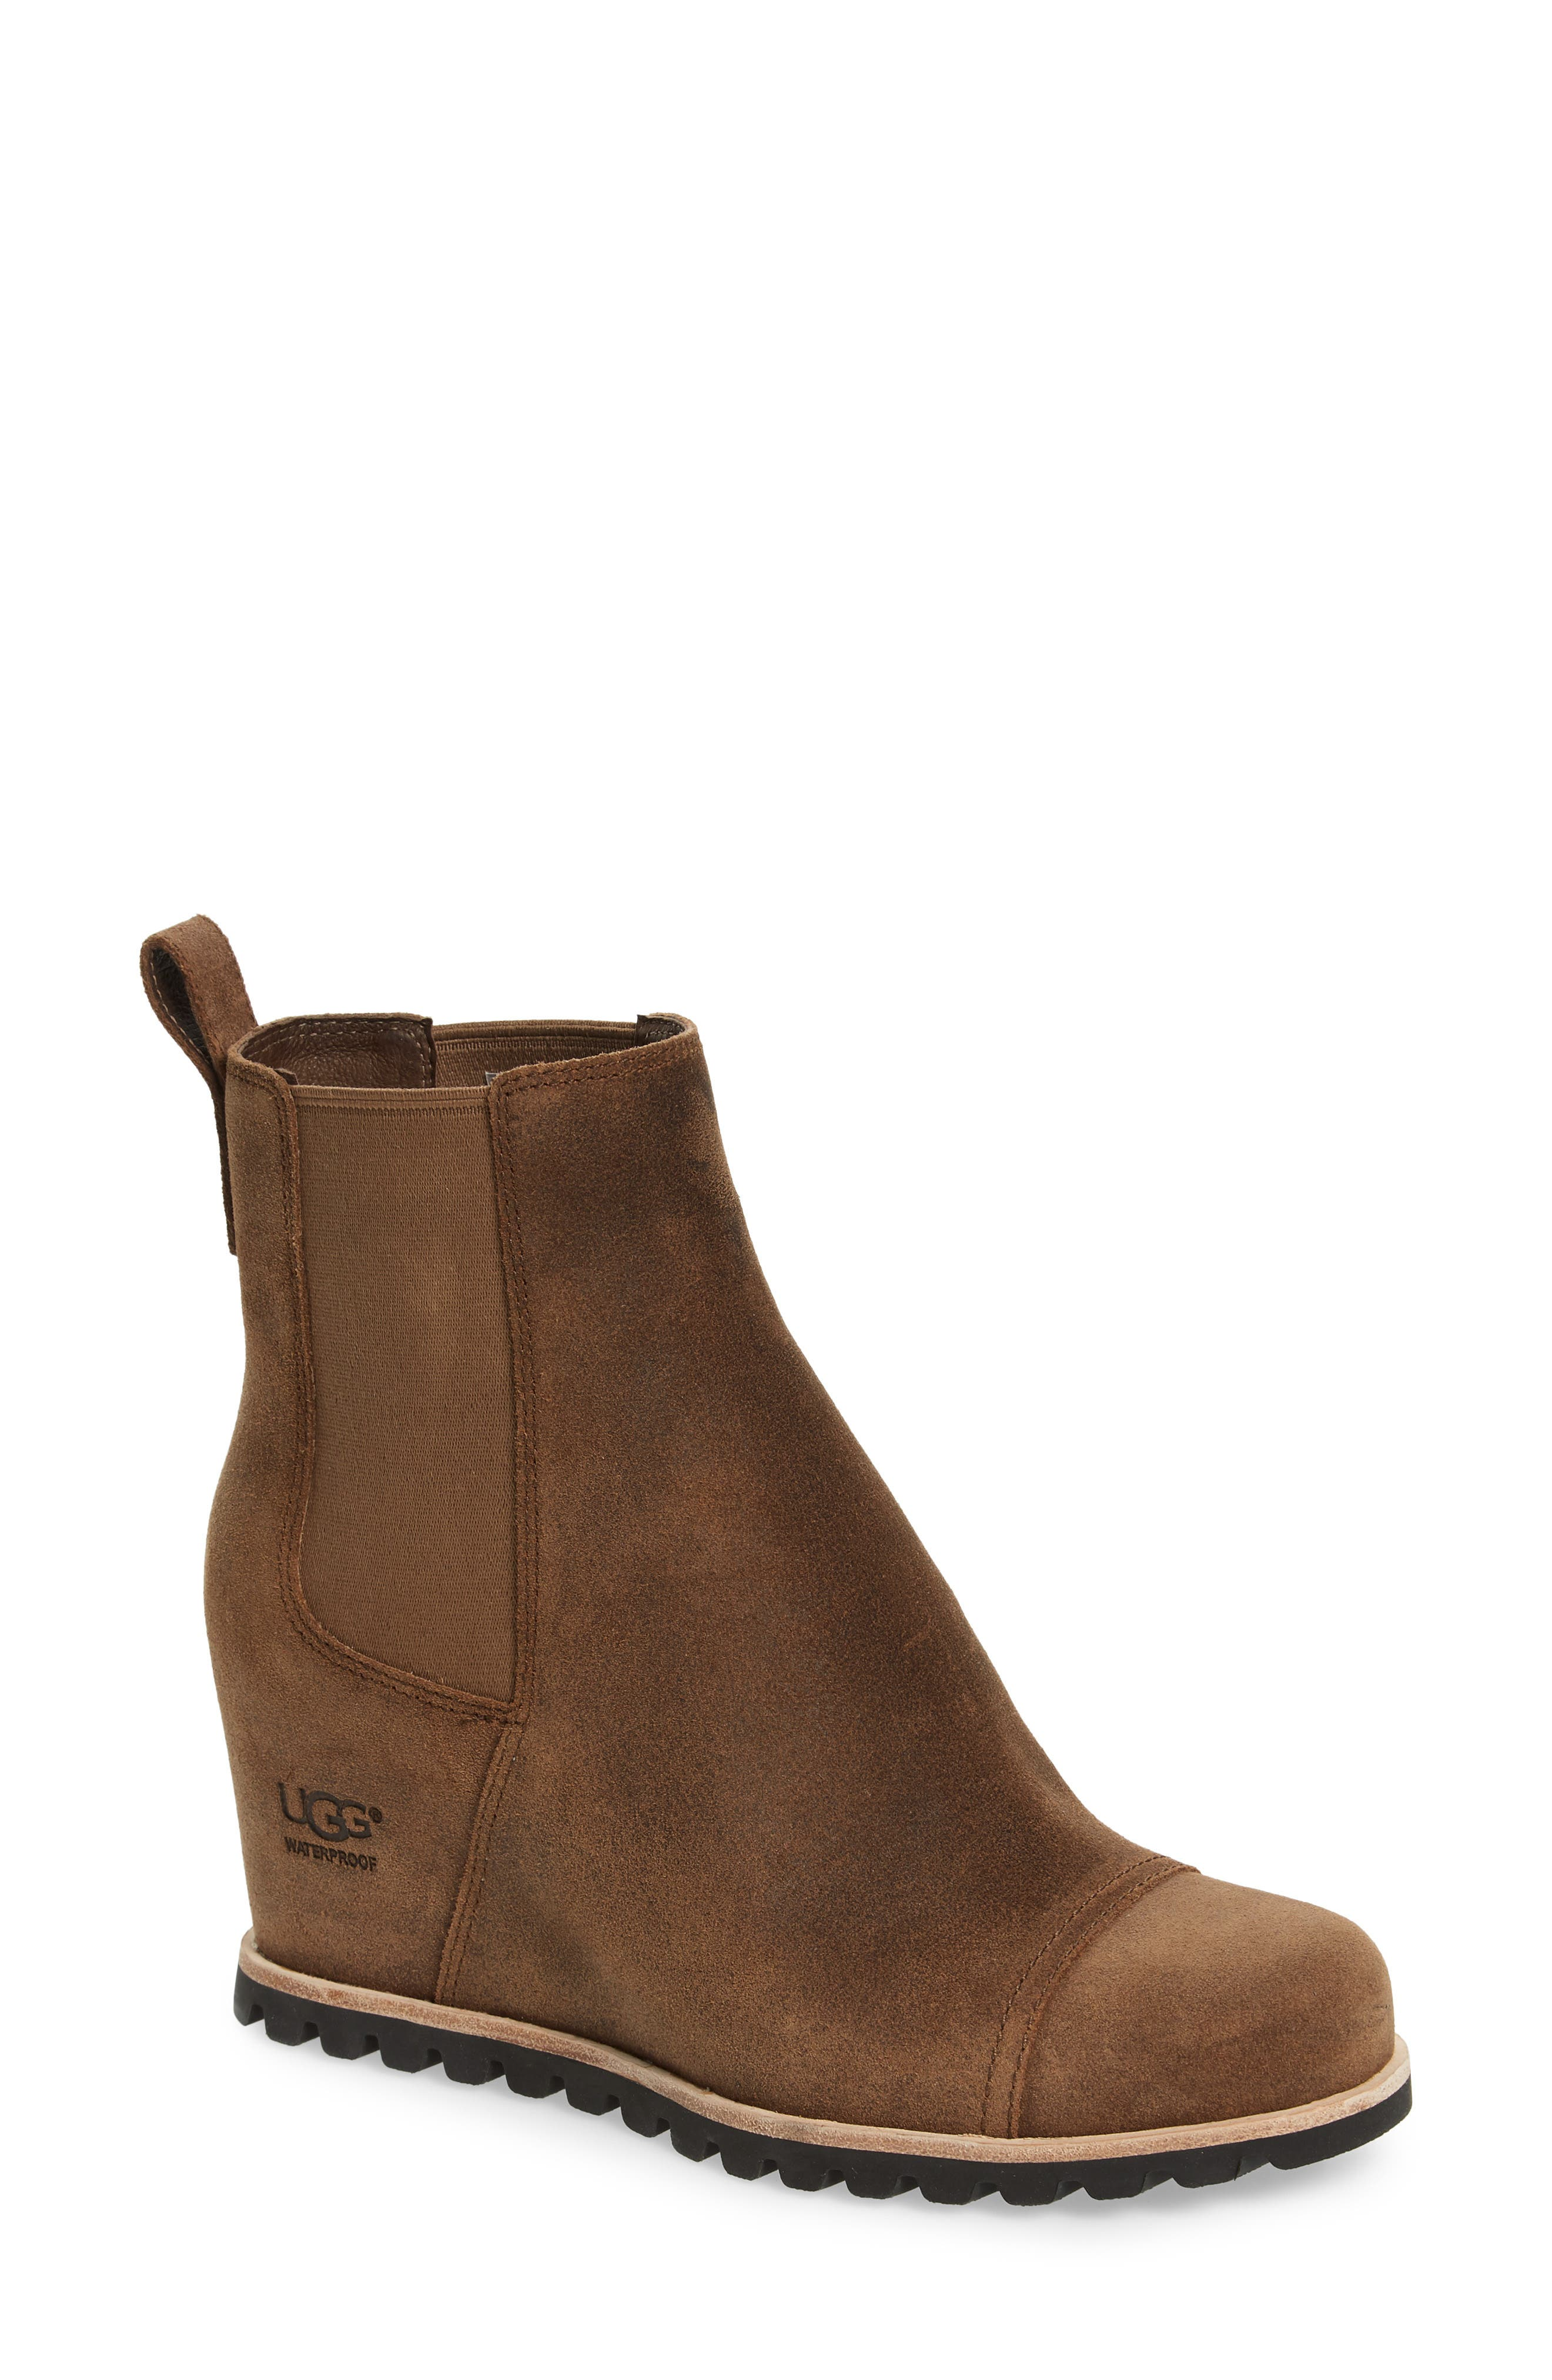 UGG<SUP>®</SUP> Pax Waterproof Wedge Boot, Main, color, 213